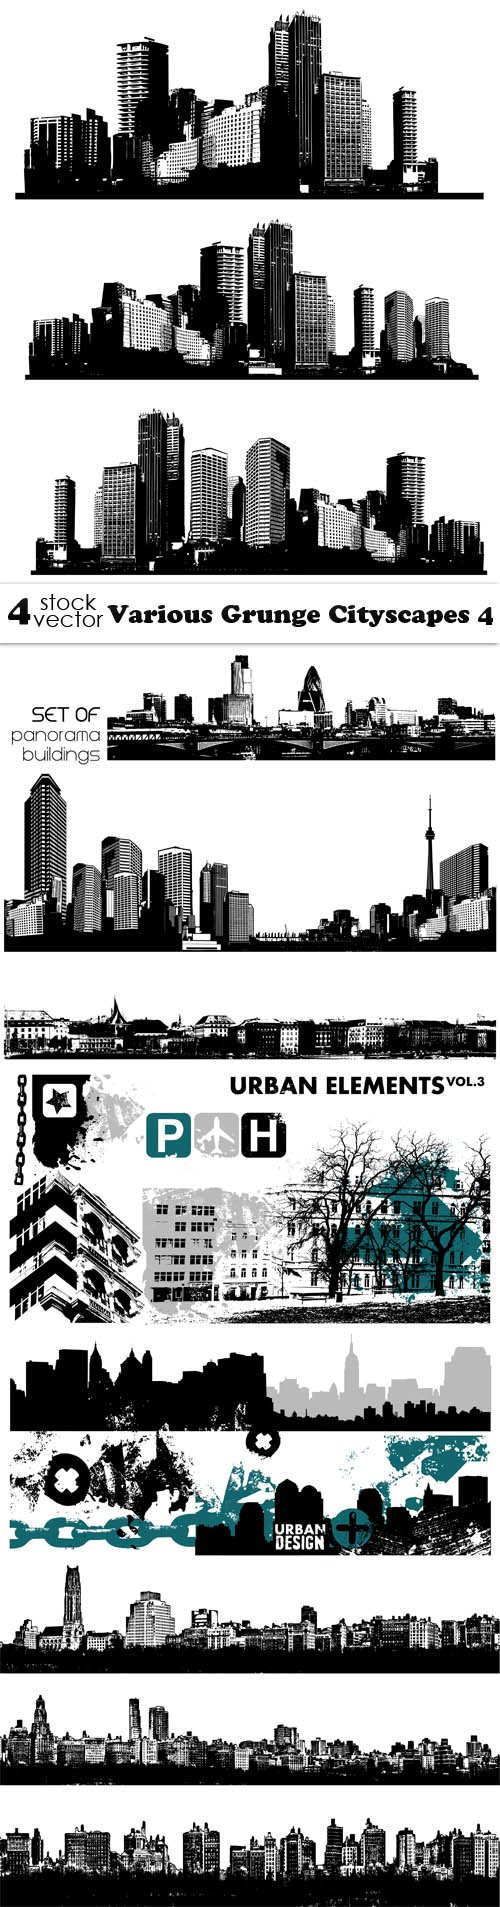 Vectors - Various Grunge Cityscapes 4